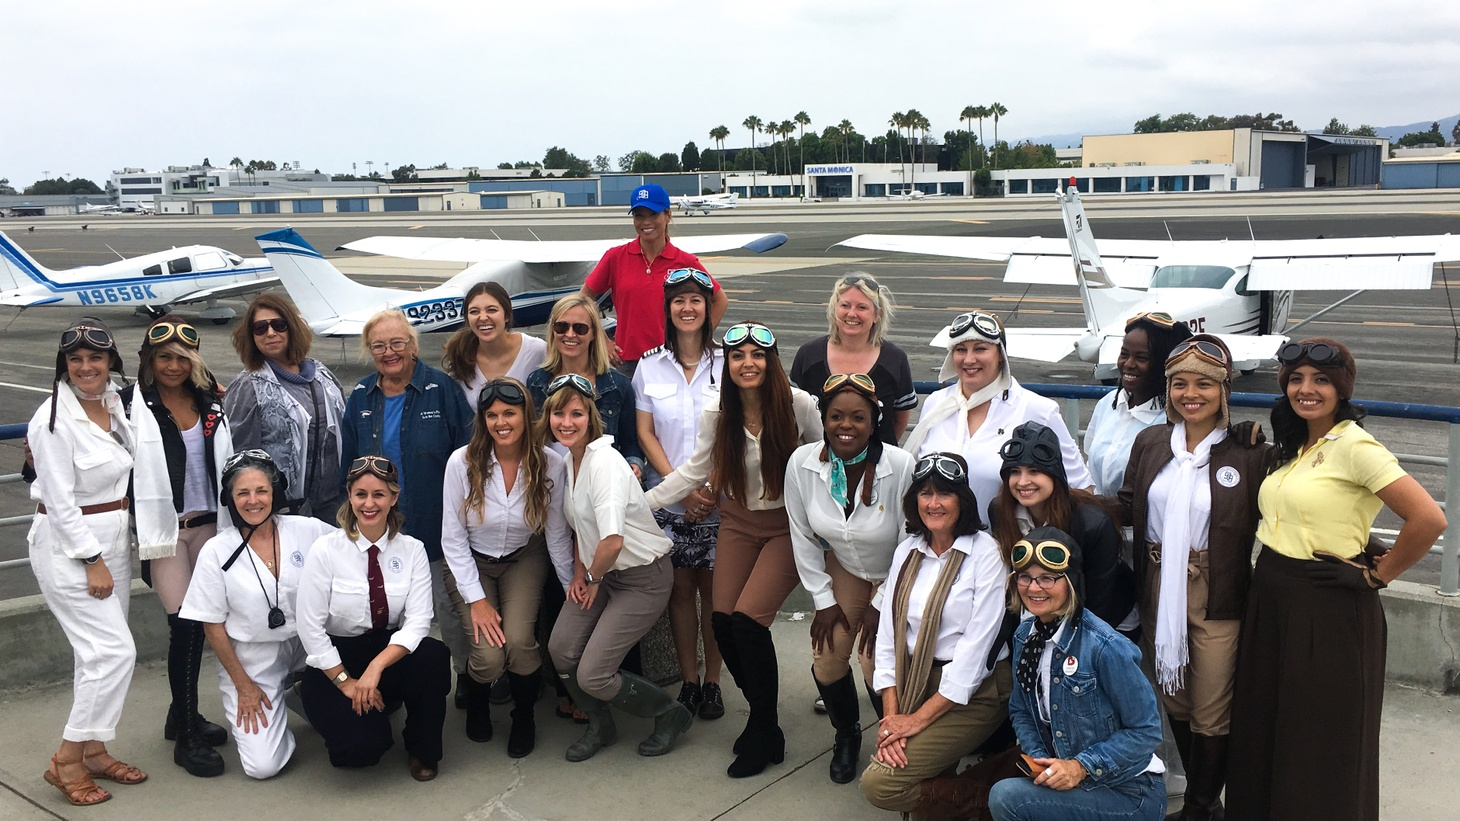 Participants of the August 18, 2019 air race from Santa Monica Airport to San Bernardino Airport.